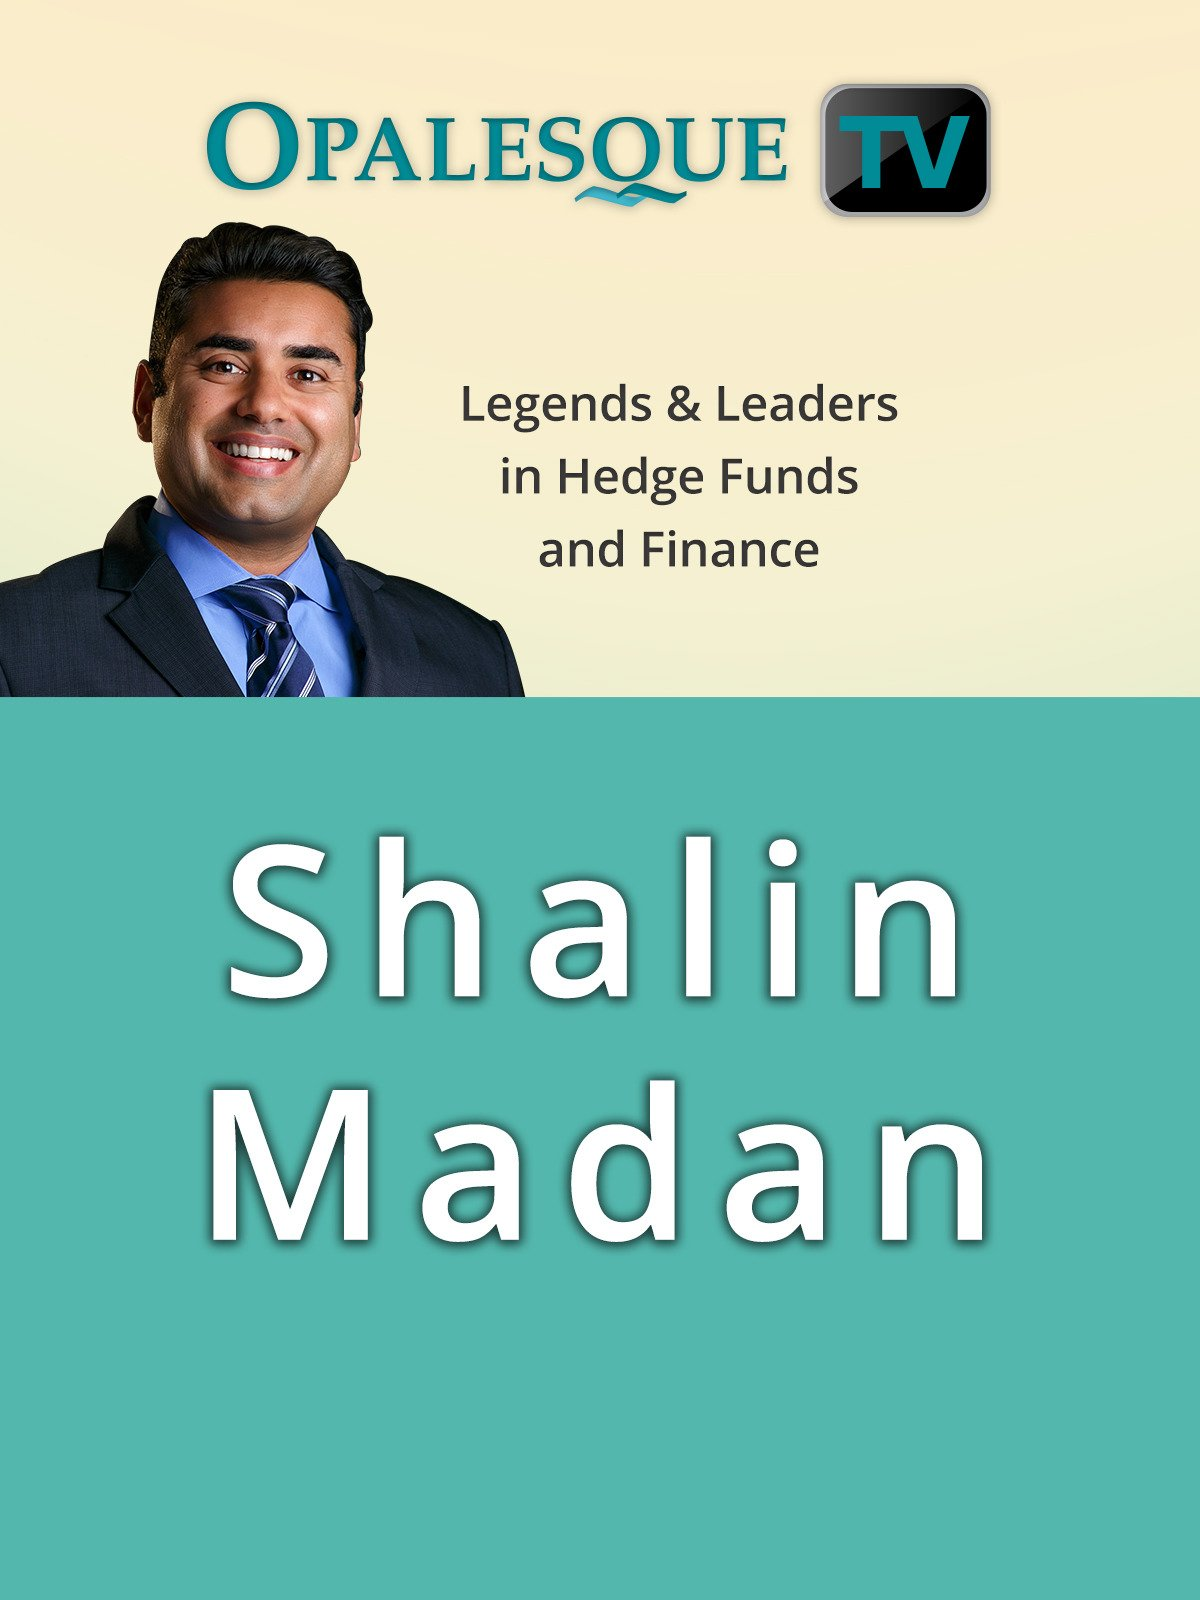 Legends & Leaders in Hedge Funds and Finance - Shalin Madan on Amazon Prime Instant Video UK